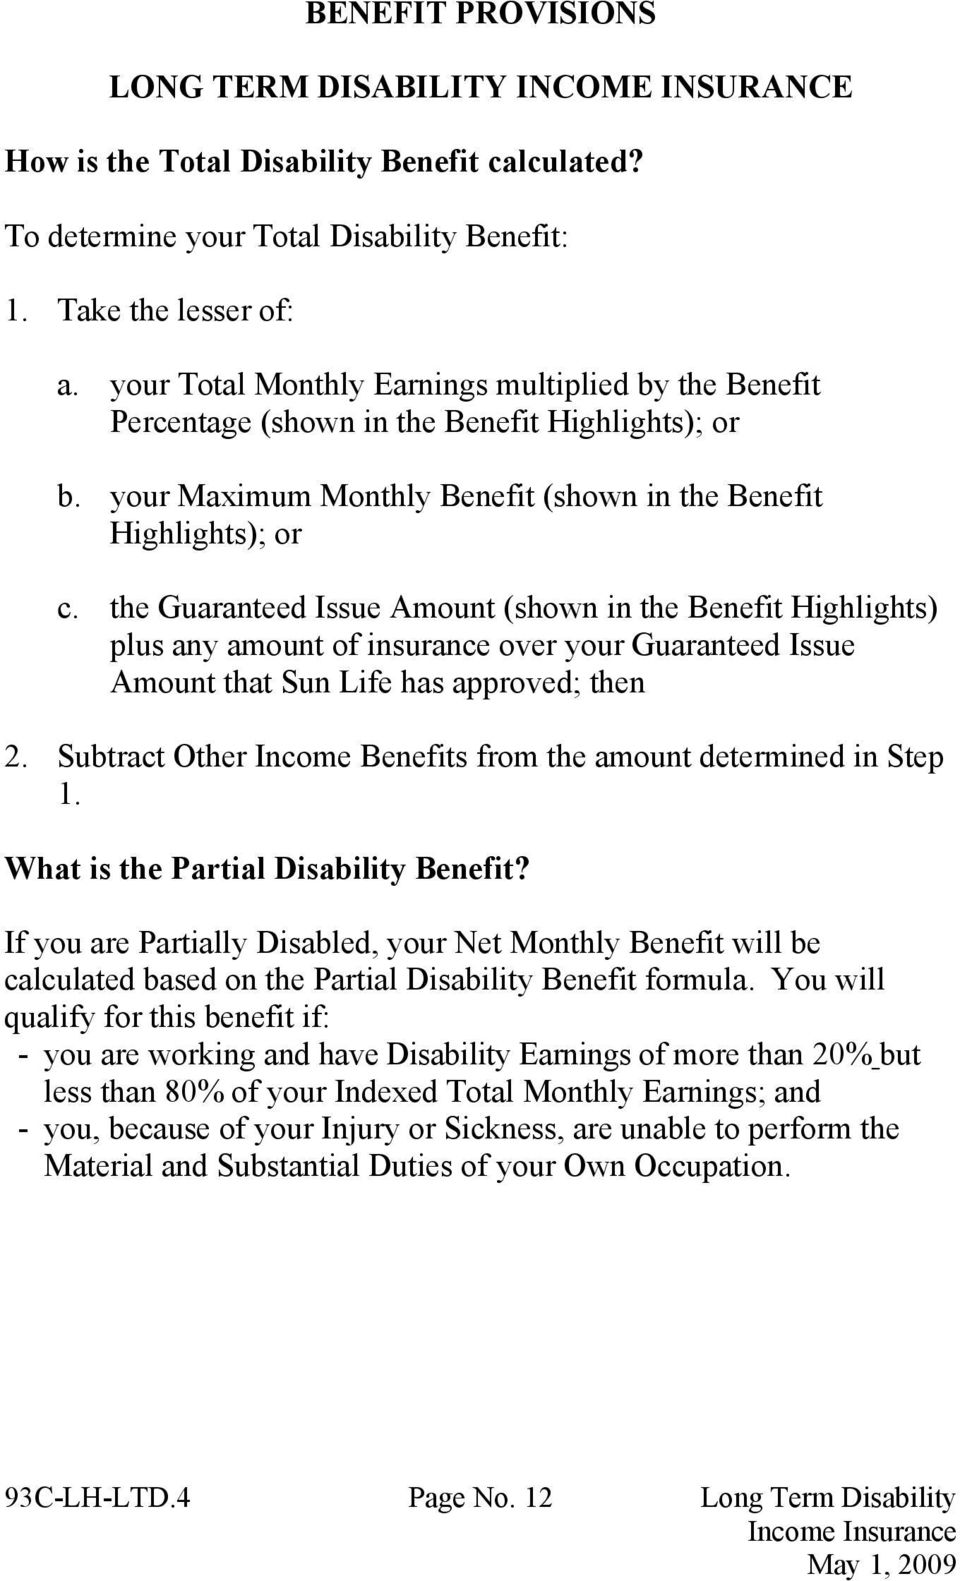 the Guaranteed Issue Amount (shown in the Benefit Highlights) plus any amount of insurance over your Guaranteed Issue Amount that Sun Life has approved; then 2.